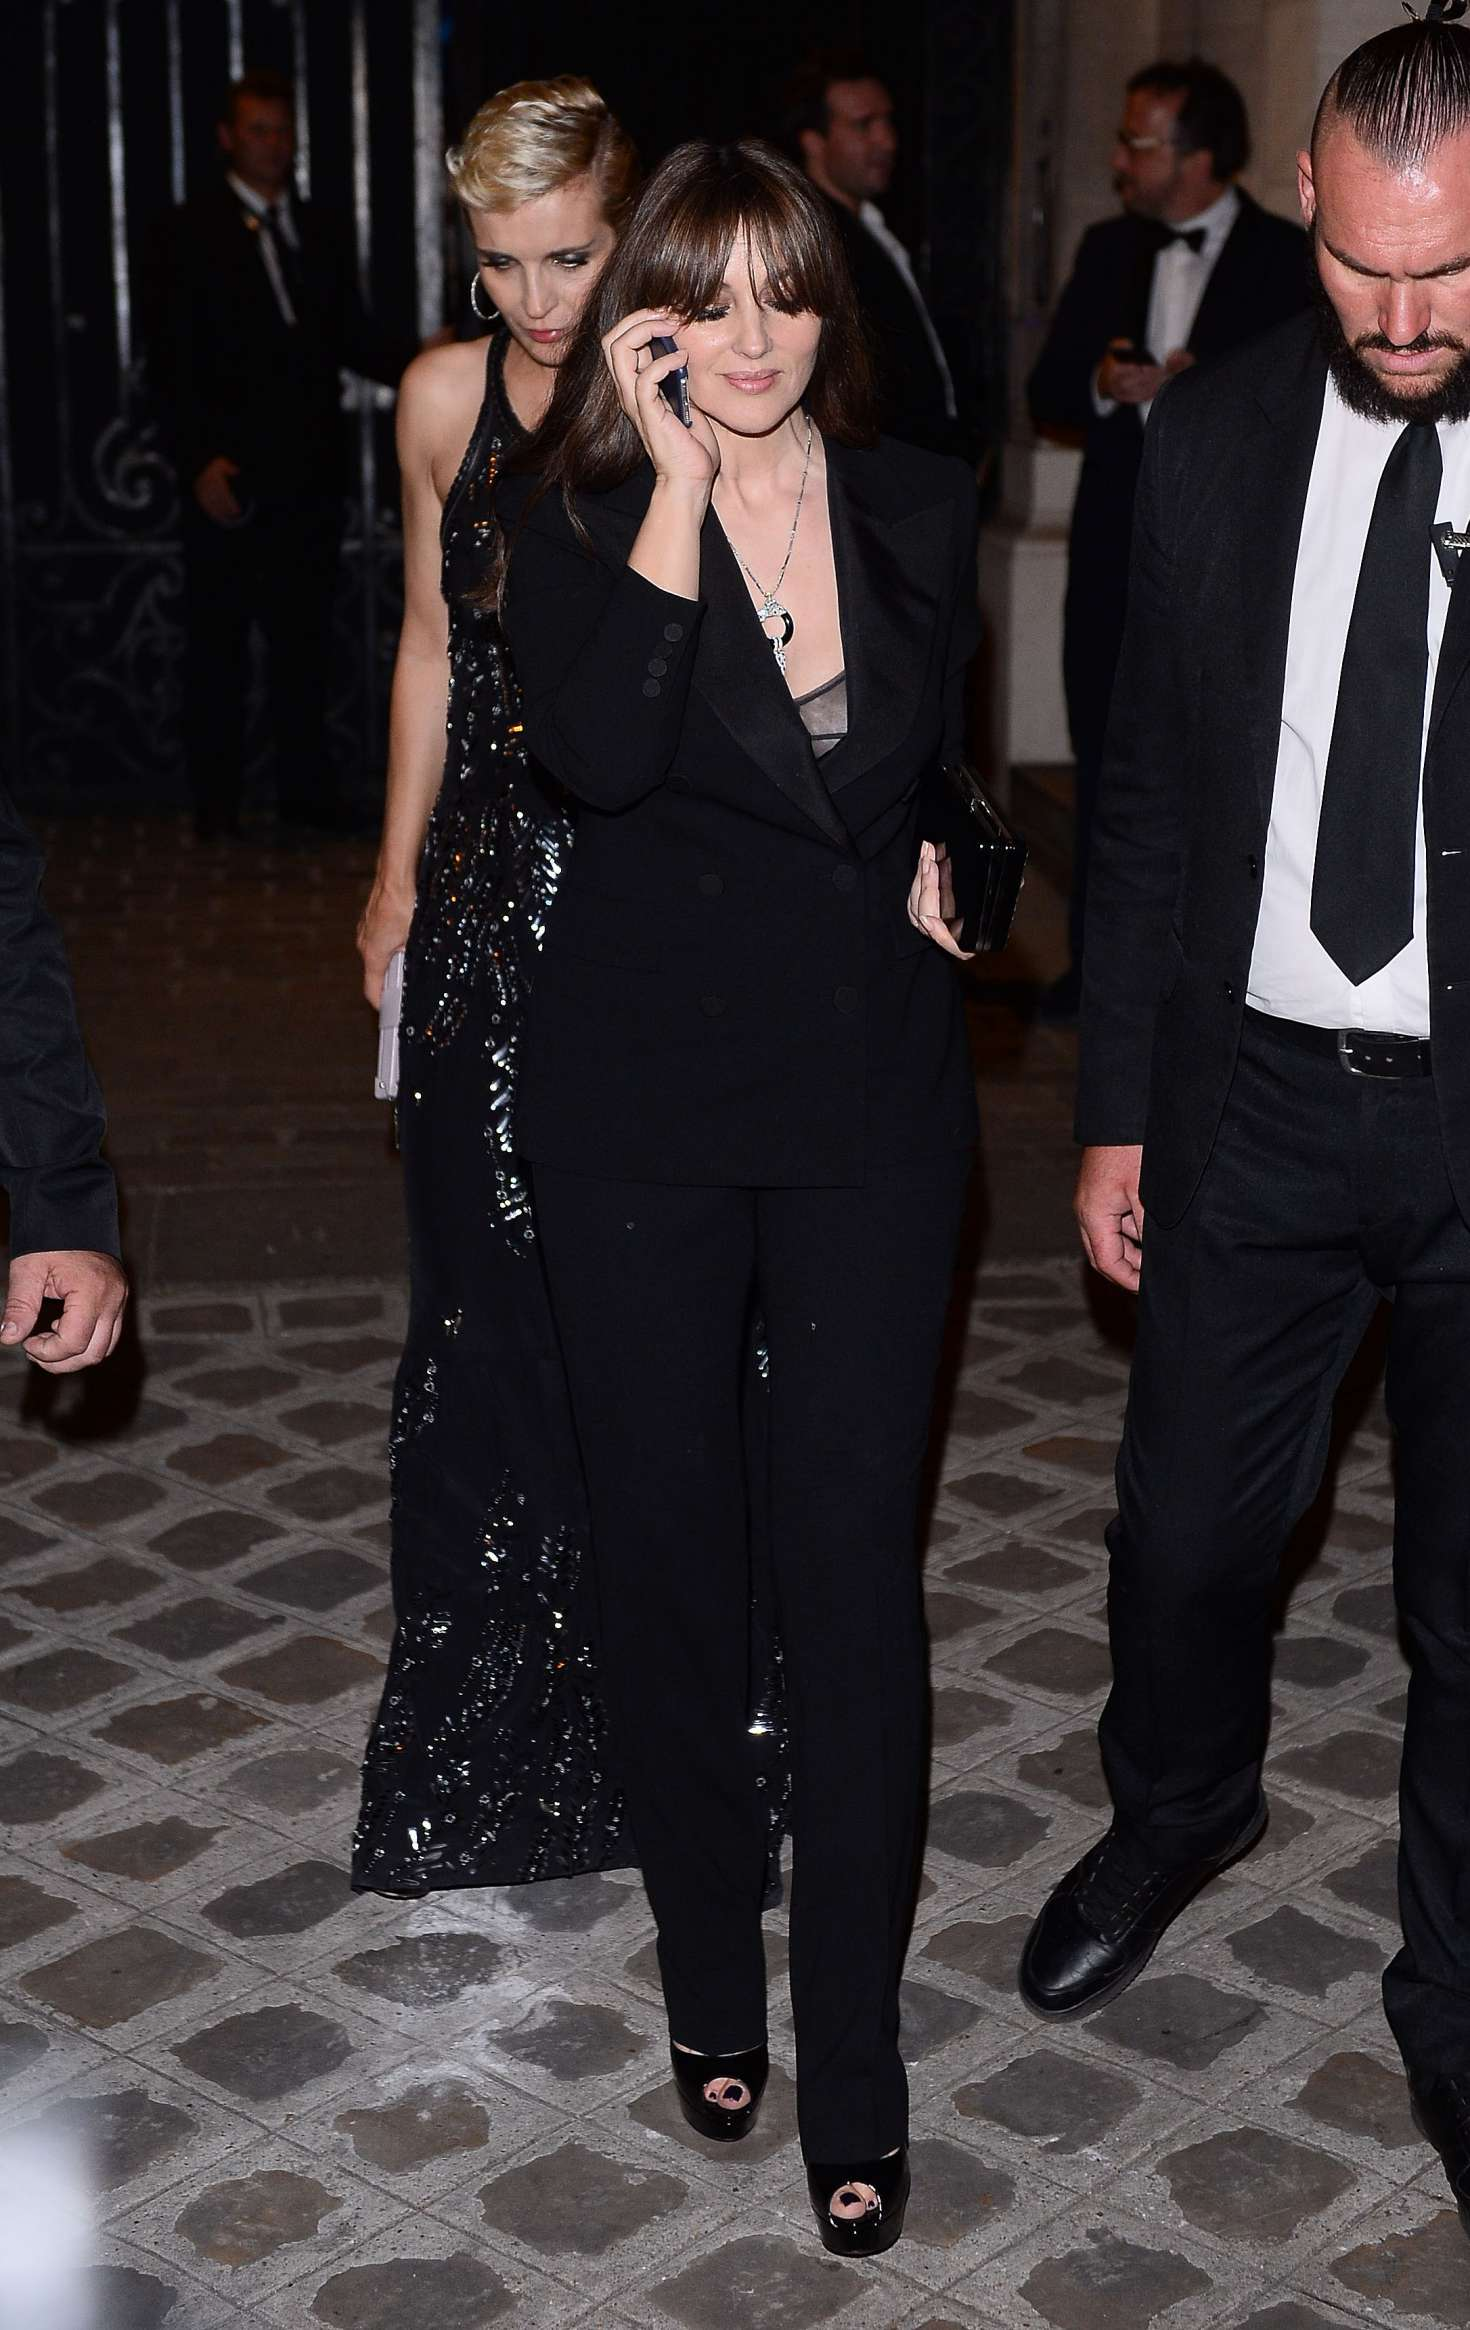 Monica Bellucci - Attends the Vogue Party 2017 in Paris